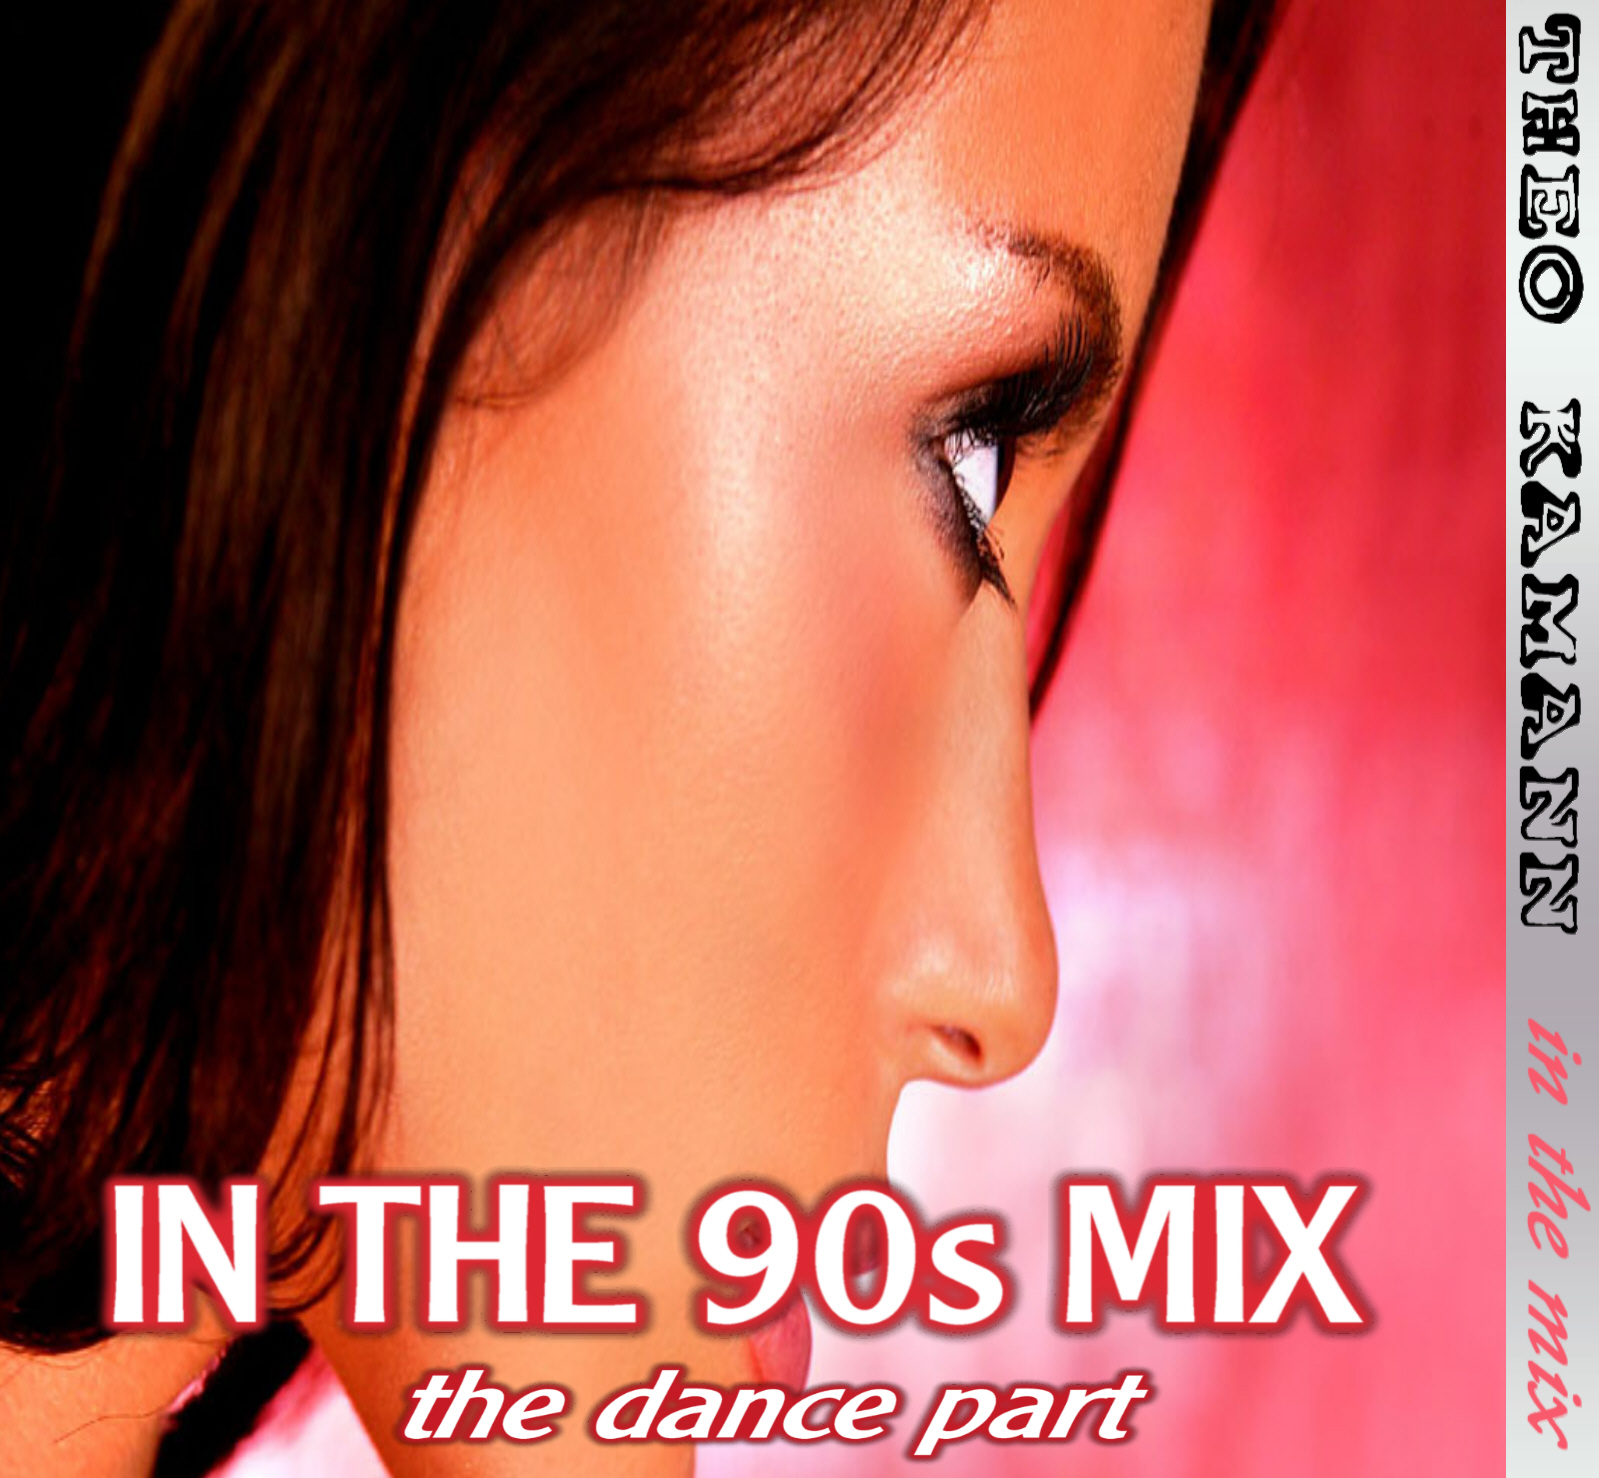 Theo Kamann Presents In The 90s Mix The Dance Part